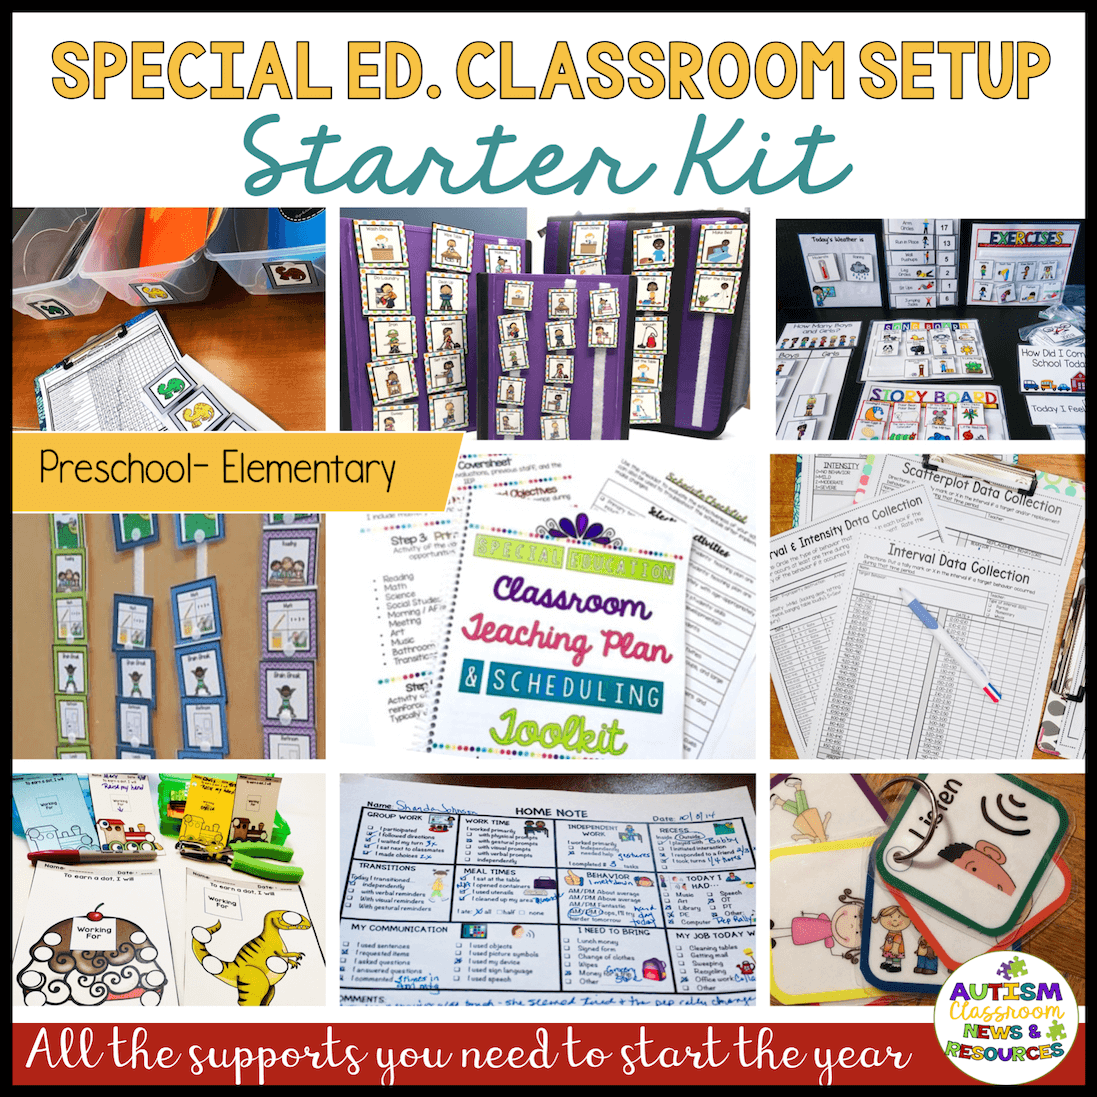 Setting up a classroom in special education can be challenging. Having the tools to do it right can make it easier. Click through to find out how to start.